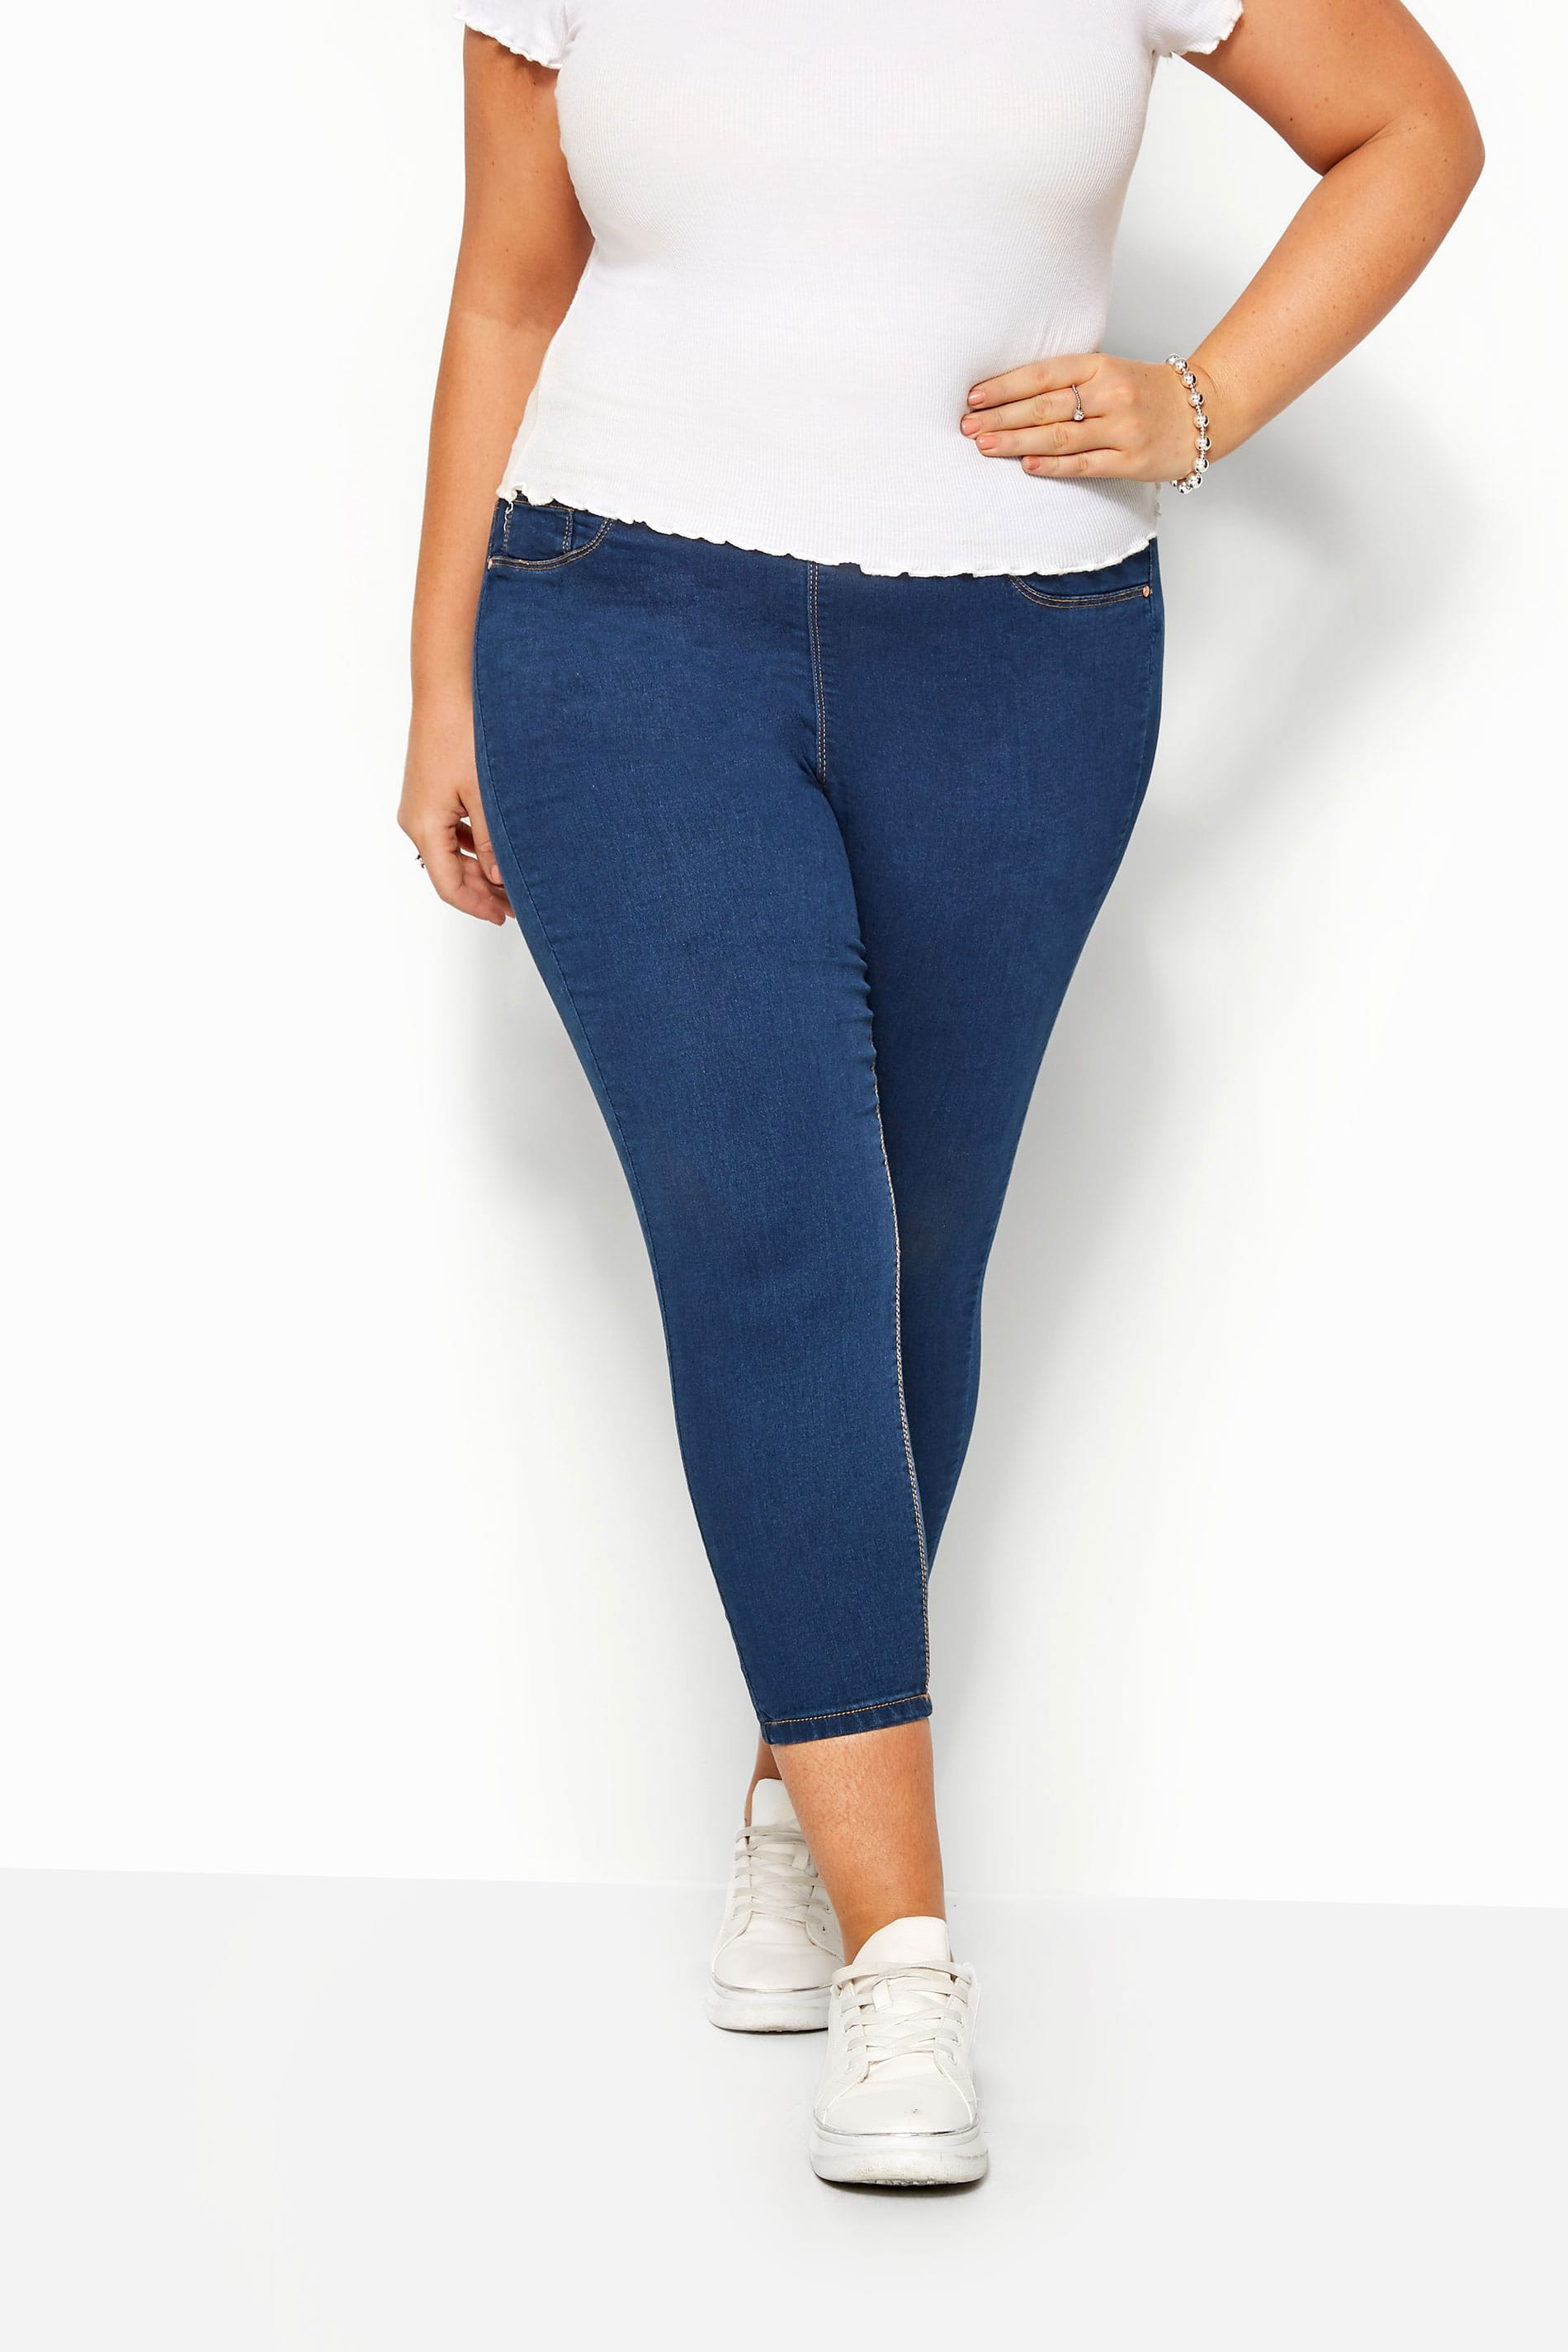 Yours-Clothing-Women-039-s-Plus-Size-Blue-Cropped-Jenny-Jeggings